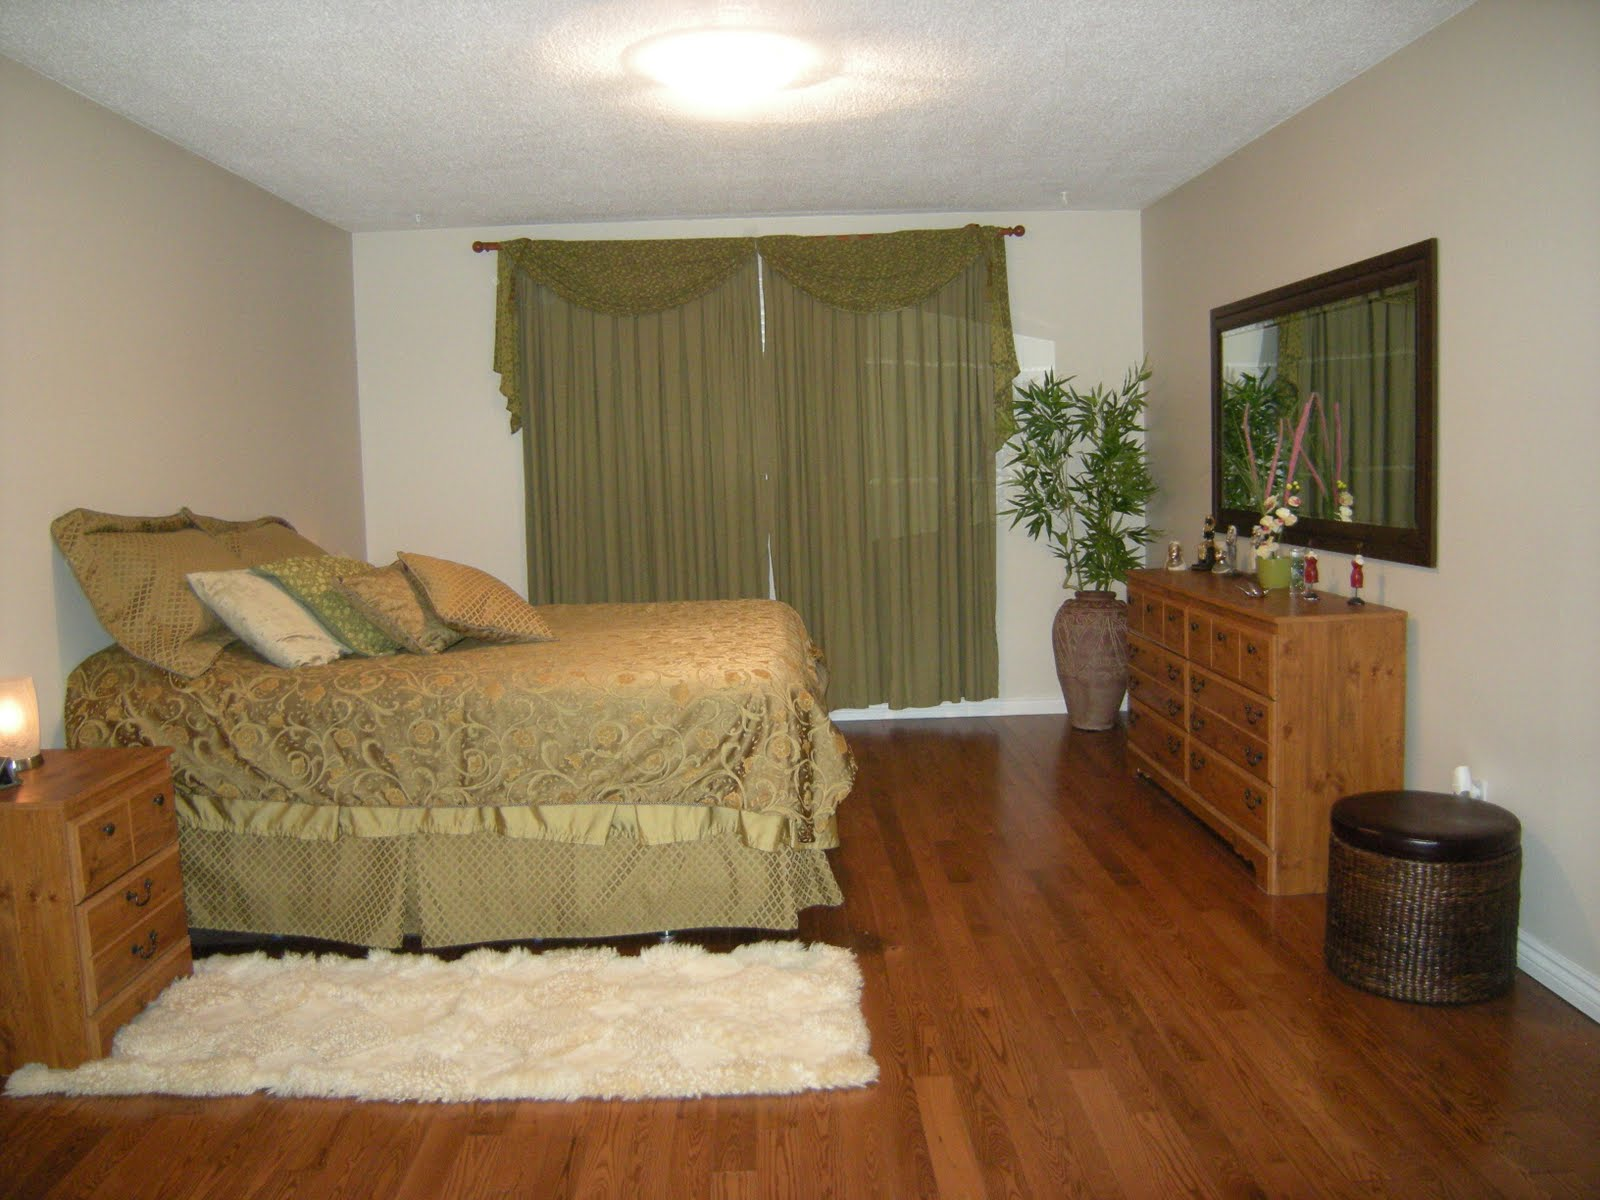 Im vel no canad 59 daines drive whitby on for sale The master bedroom whitby